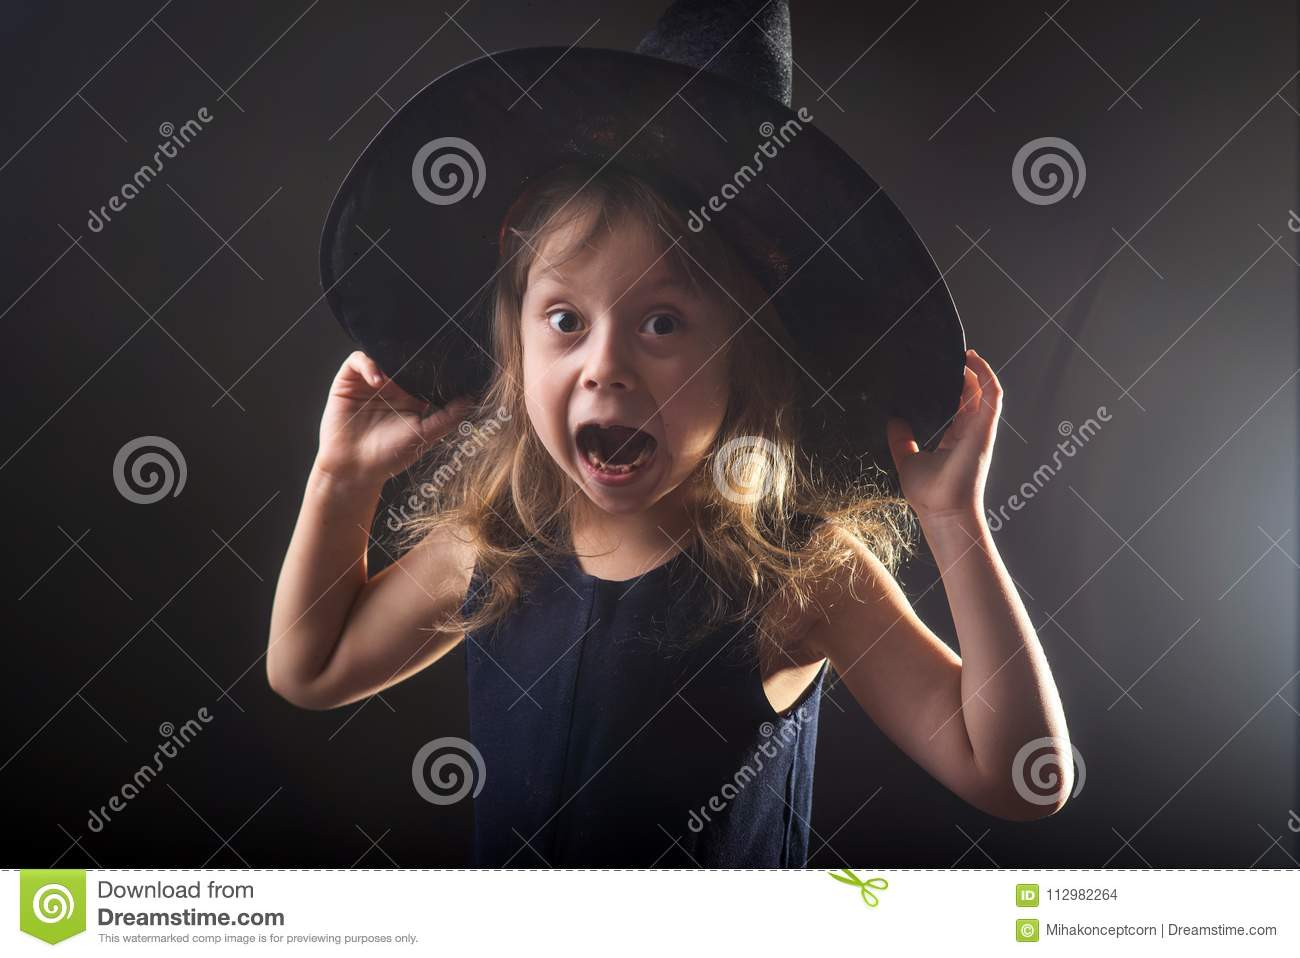 Little girl in witch hat on a dark background, banner for halloween.